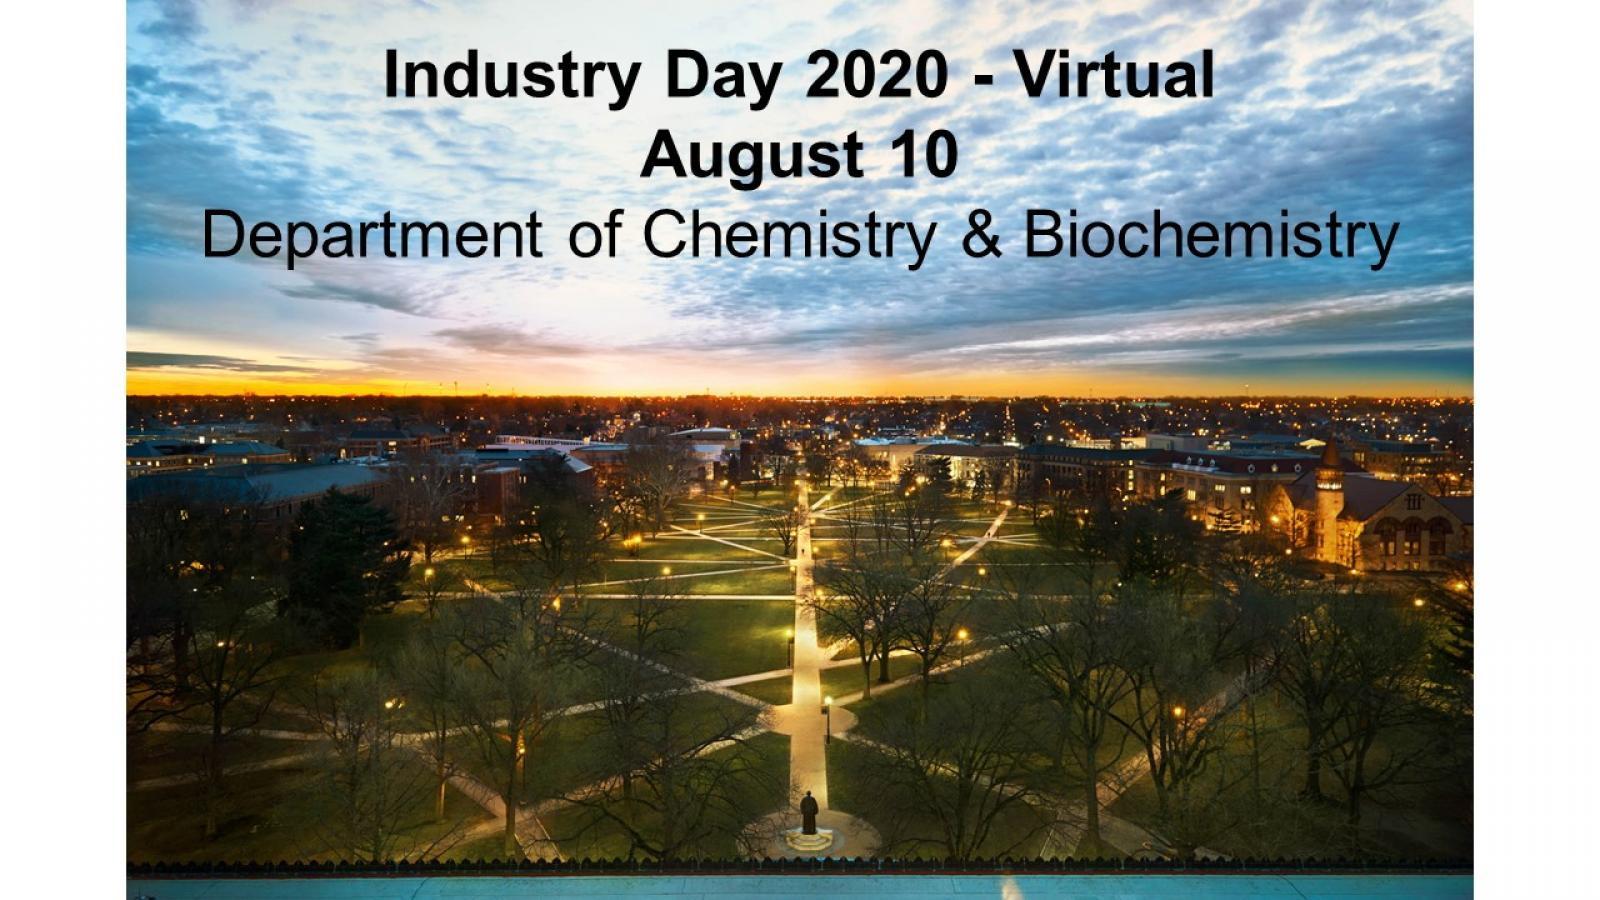 Industry Day 2020 - Virtual